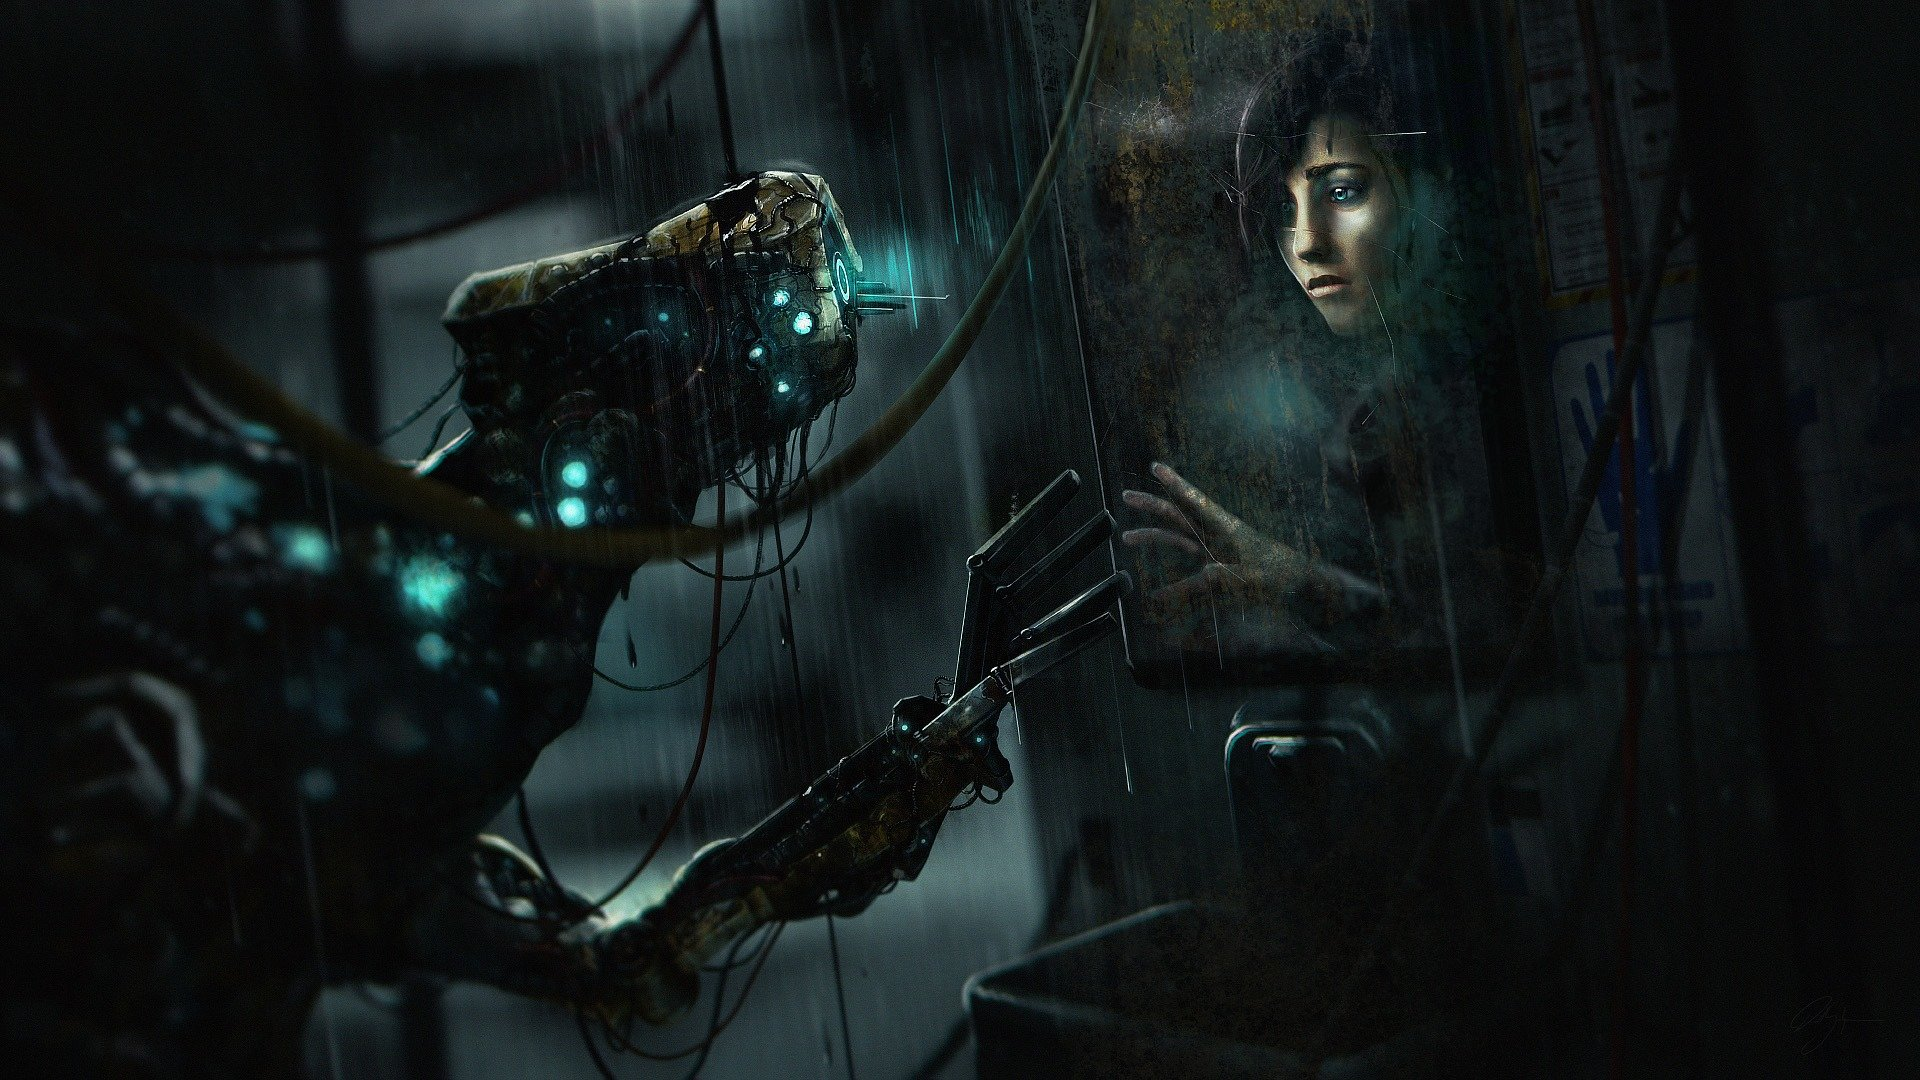 SOMA wallpapers HD for desktop backgrounds 1920x1080